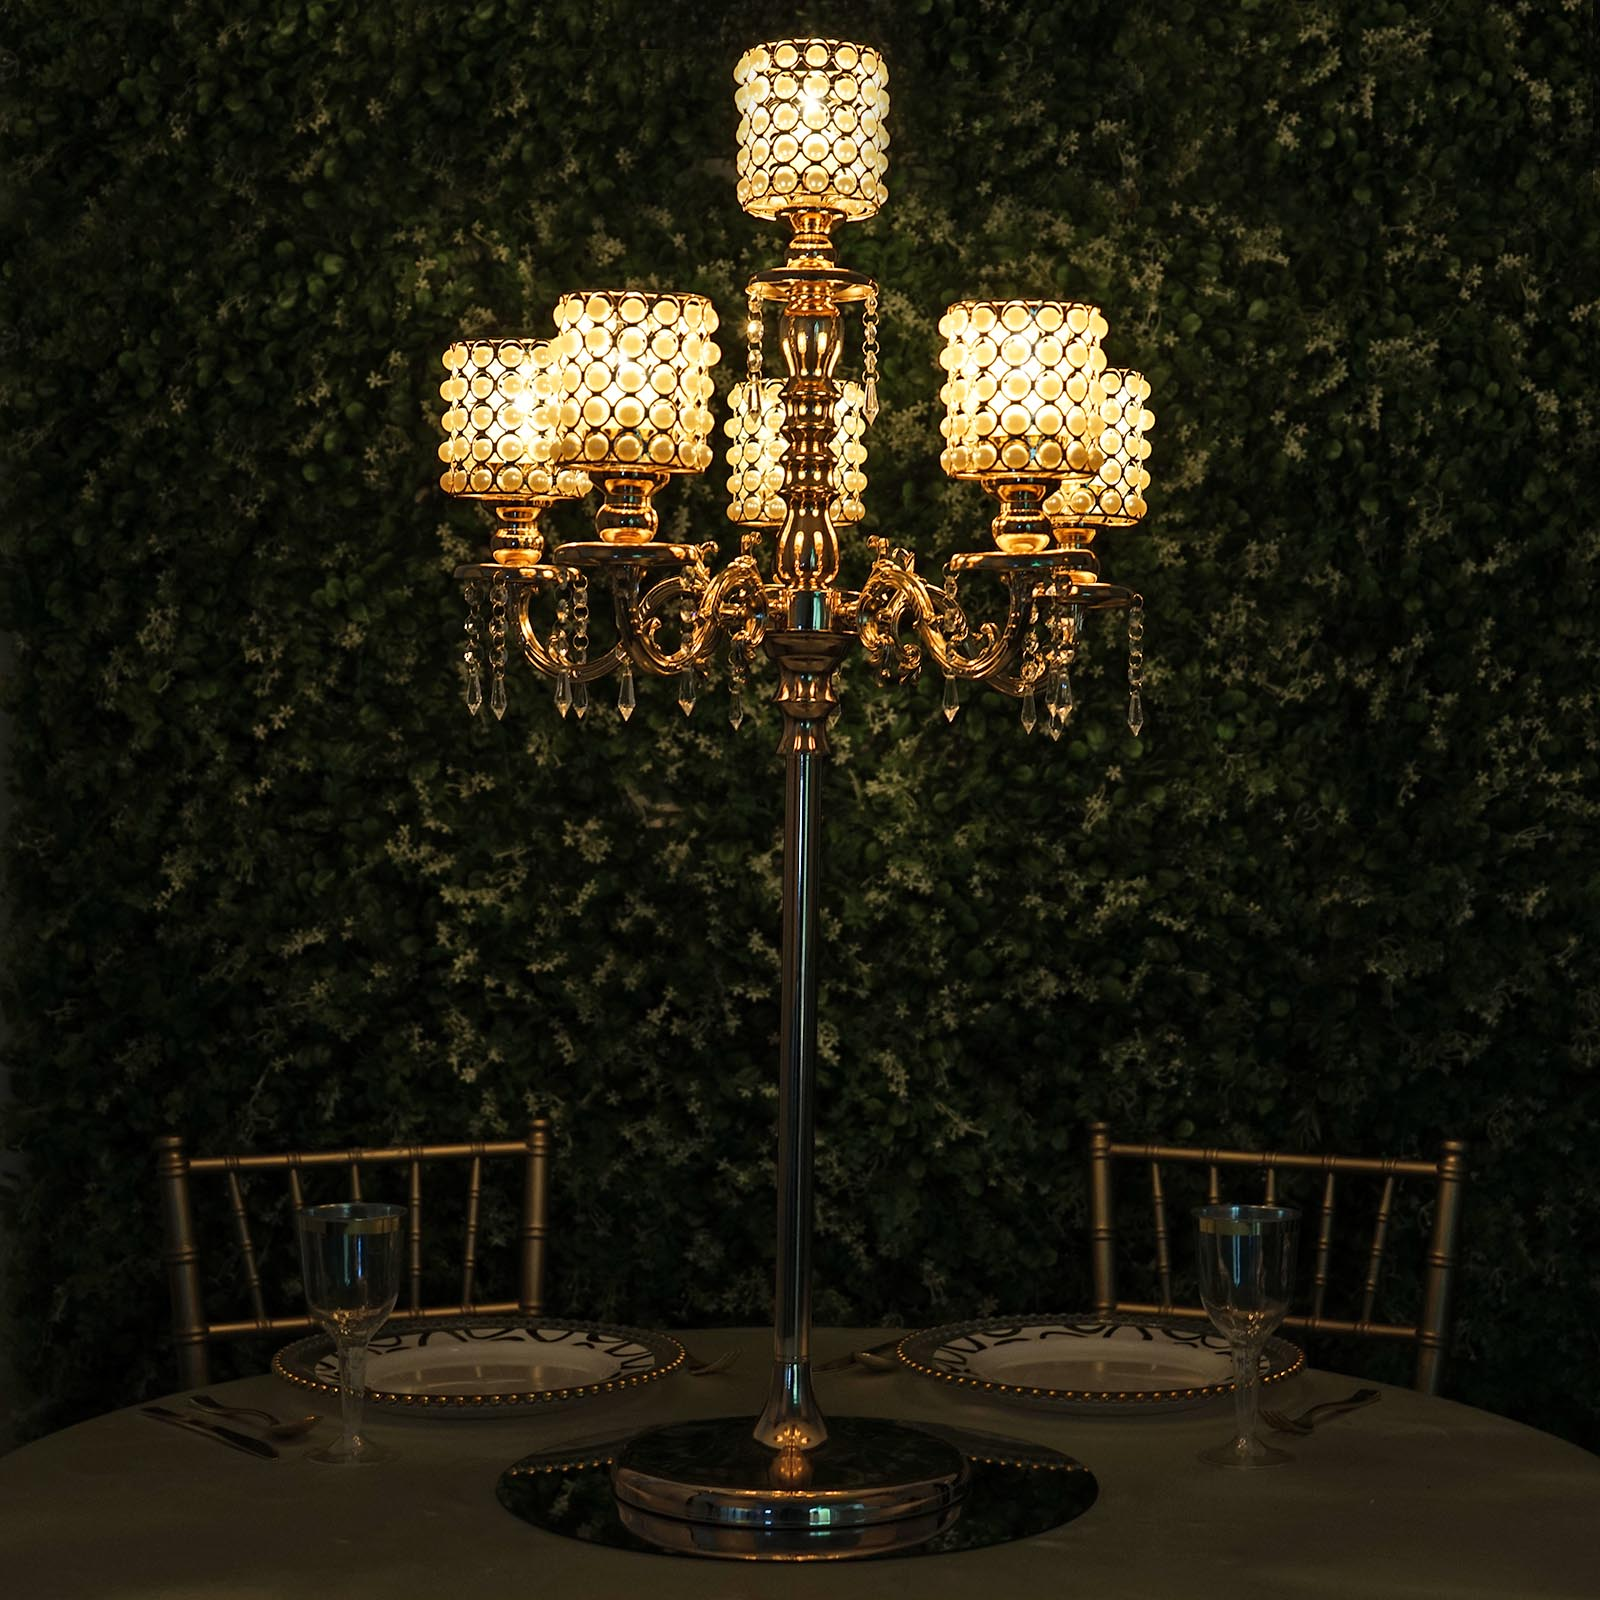 How To Make A Crystal Chandelier Centerpiece With Lights